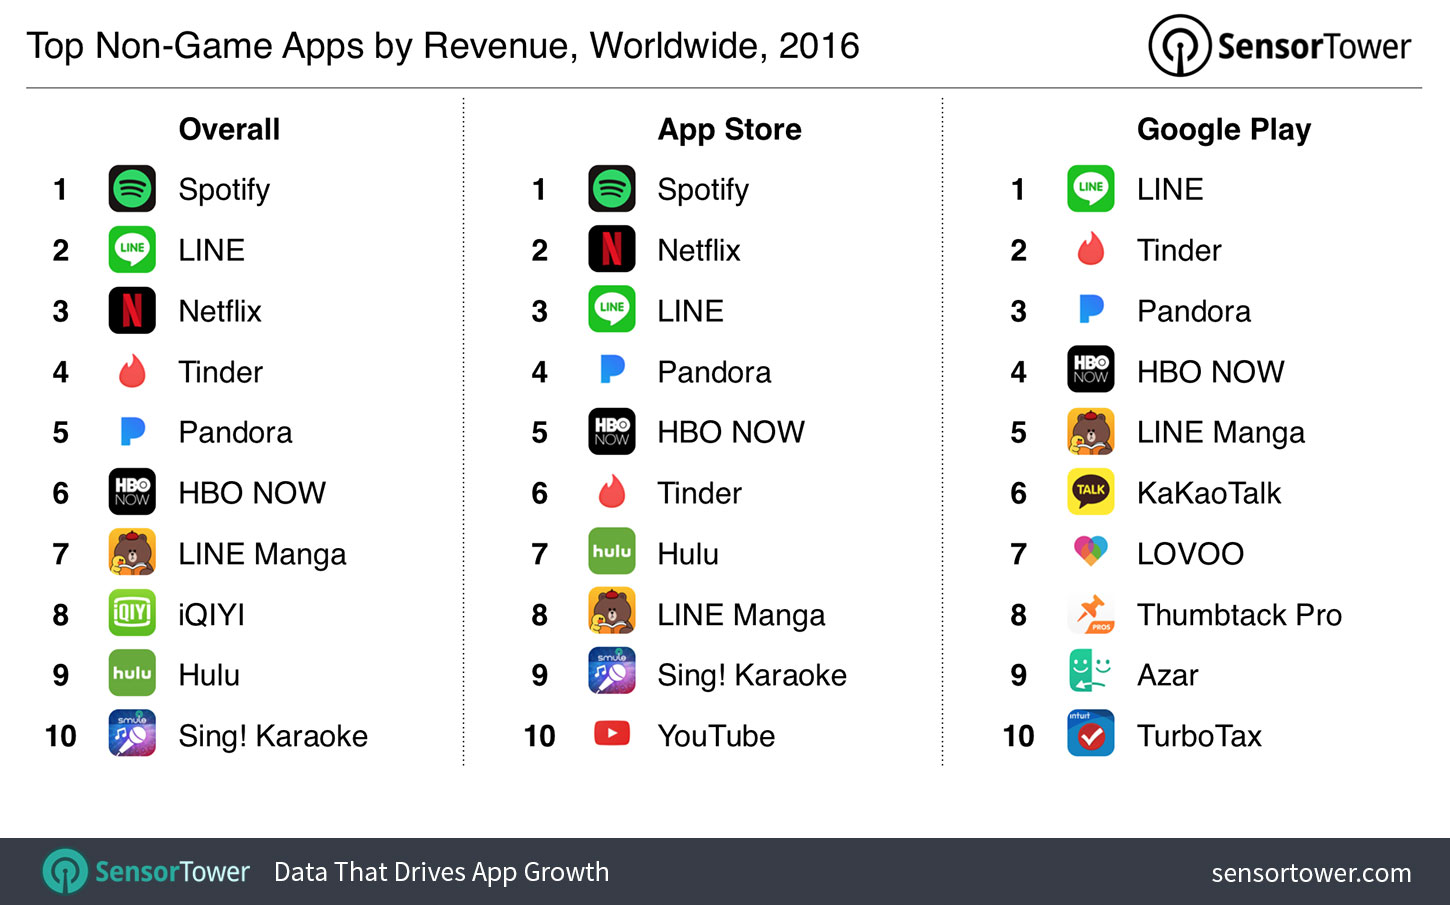 Top Apps of 2016: Spotify, Line, and Netflix Led the Year's